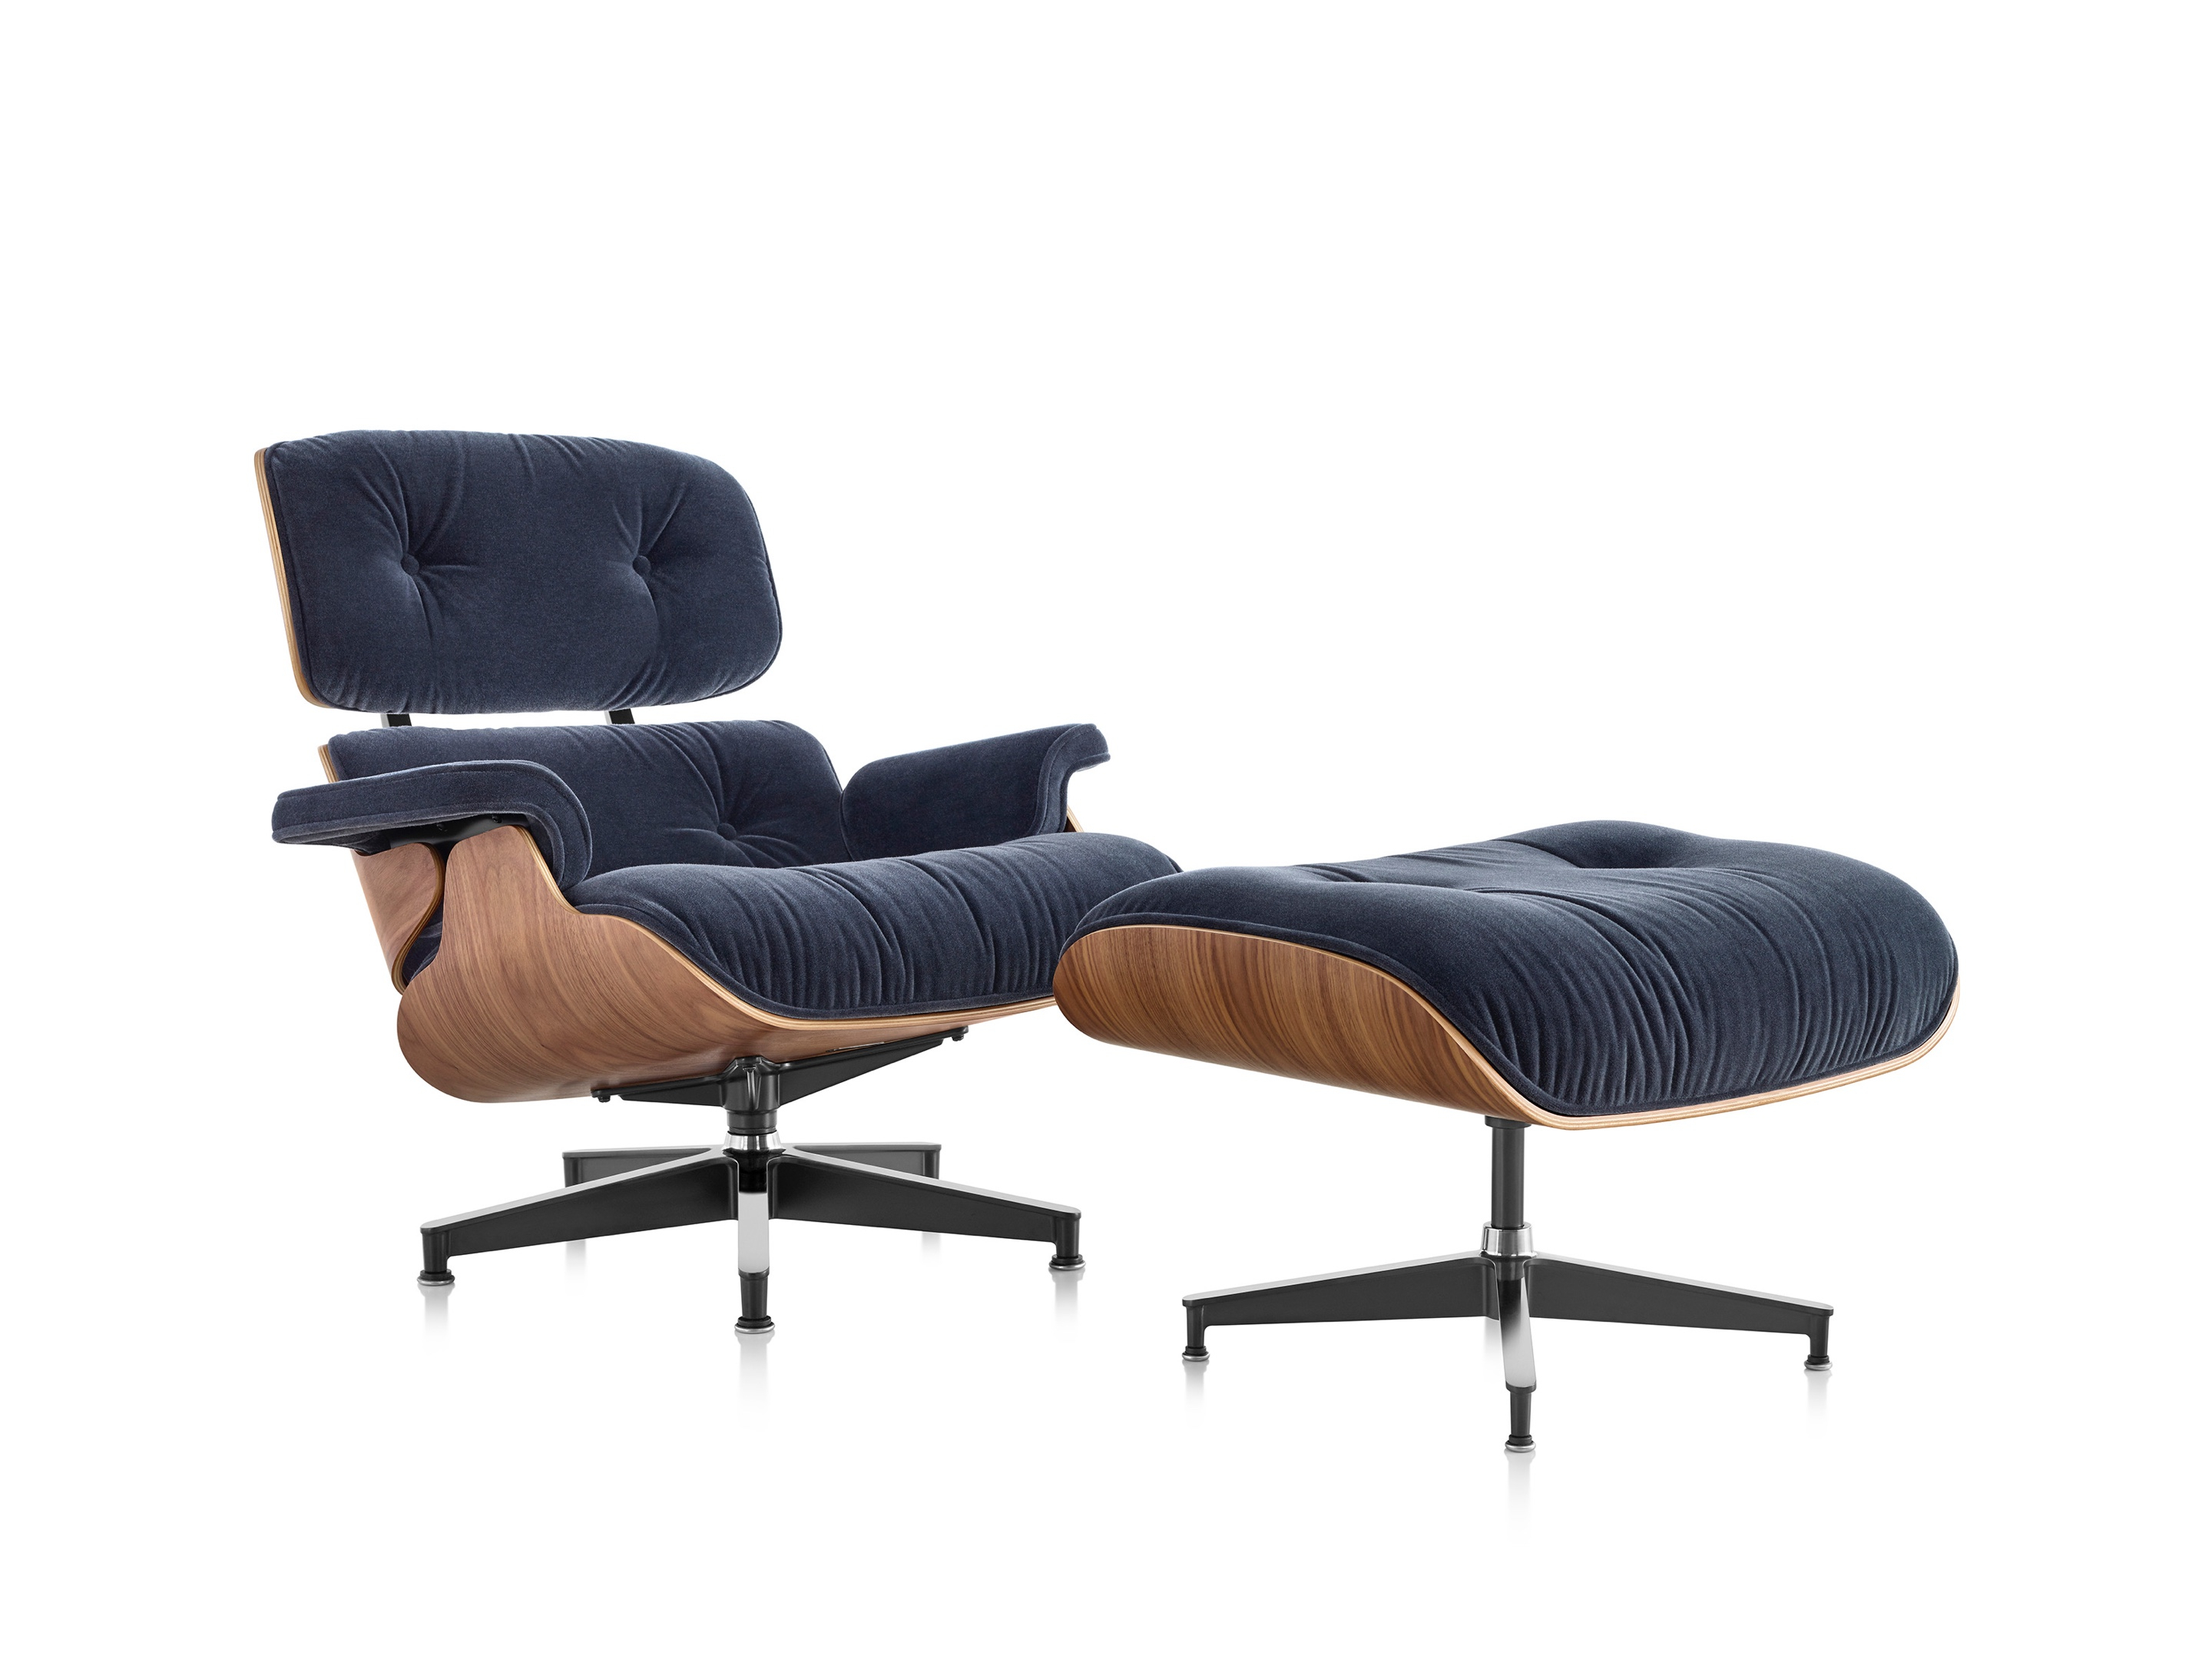 Ames Arm Sofa Chairs Within Latest Eames® Lounge Chair And Ottoman – Herman Miller (Gallery 18 of 20)